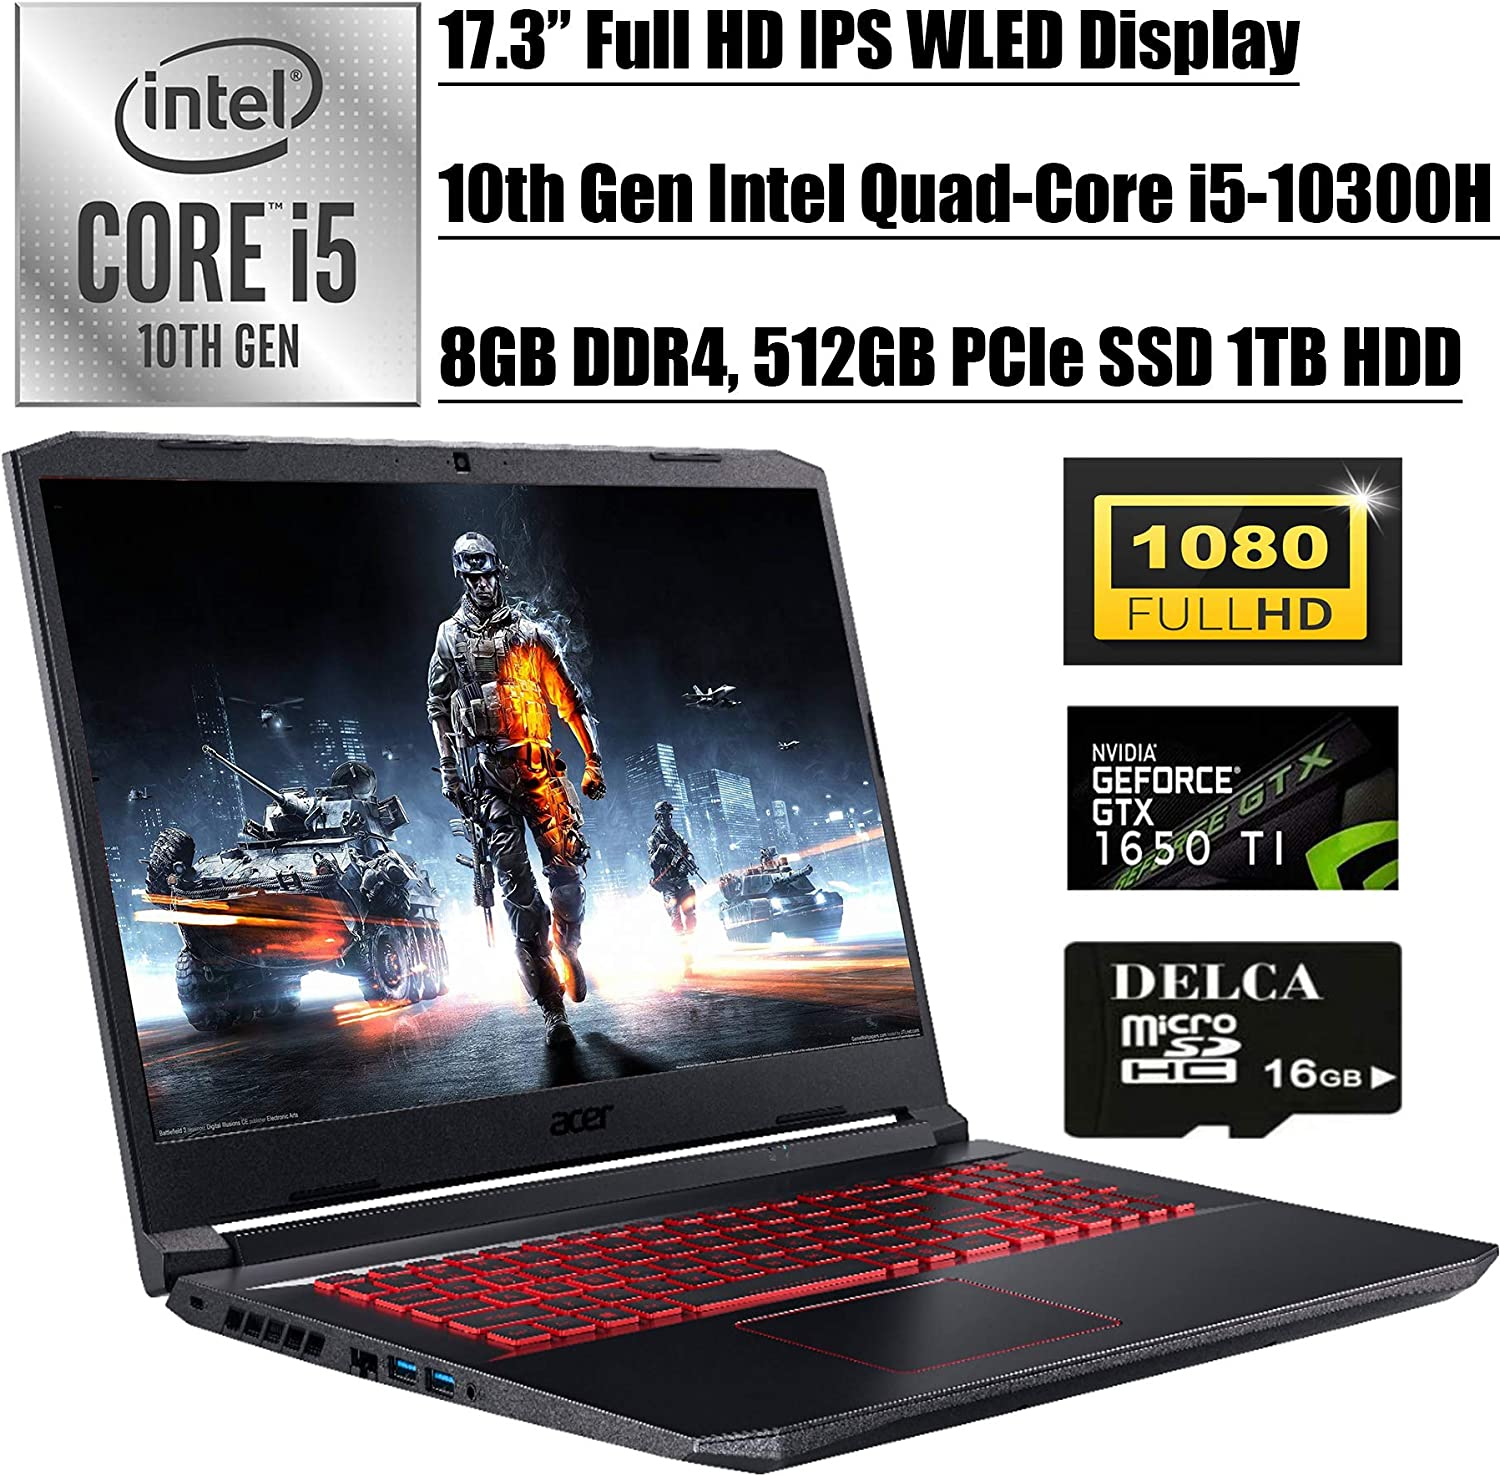 "Acer Nitro 5 2020 Flagship Gaming Laptop I 17.3"" FHD IPS WLED I Intel Quad-Core i5-10300H (>i7-8850H) I 8GB DDR4 512GB PCIe SSD 1TB HDD I 4GB GTX 1650Ti Backlit KB Win 10 + Delca 16GB Micro SD Card"